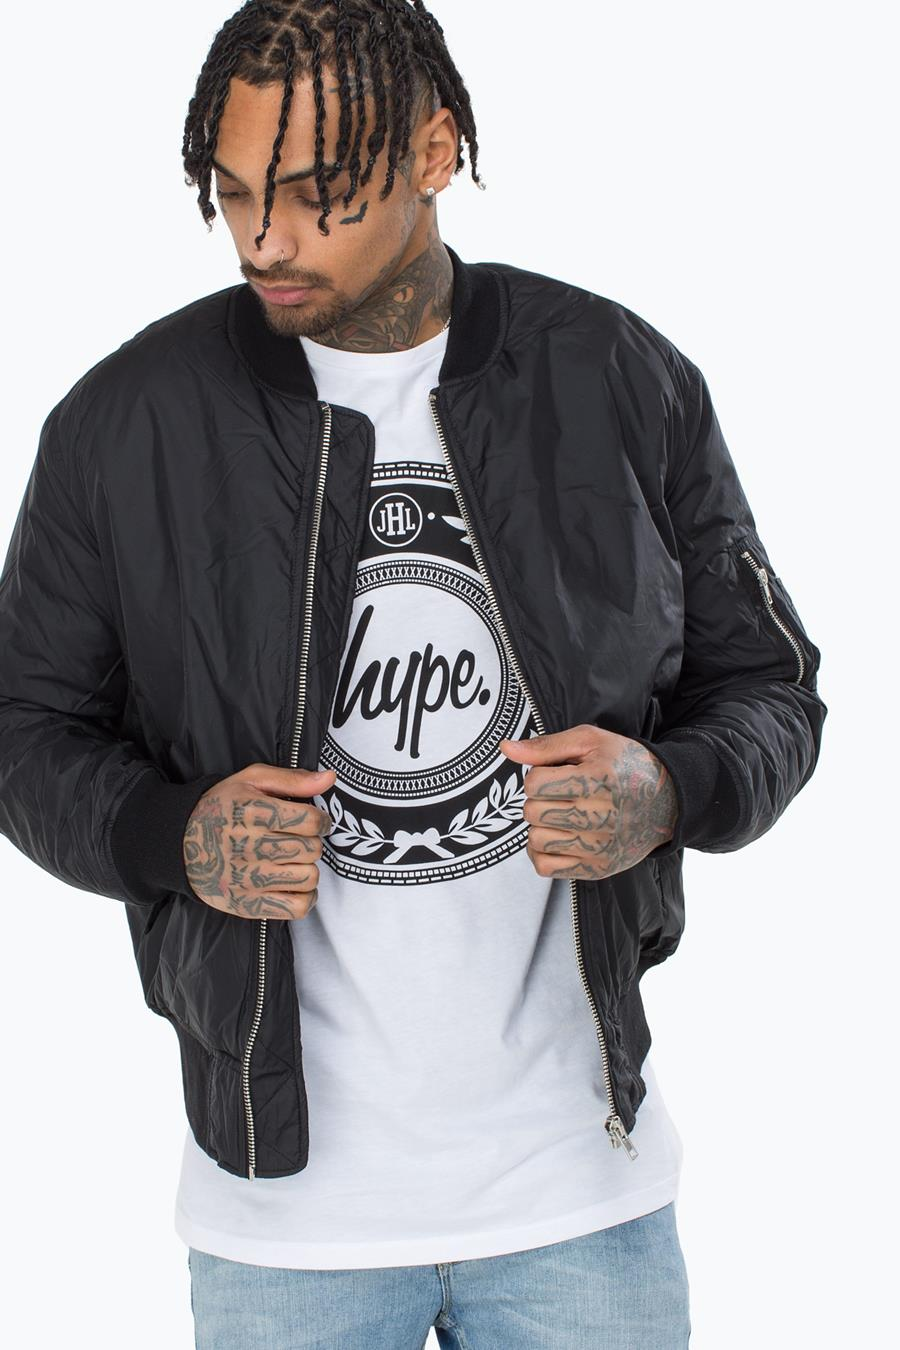 reasonable price cheap for sale new high HYPE BLACK CLASSIC MENS BOMBER JACKET